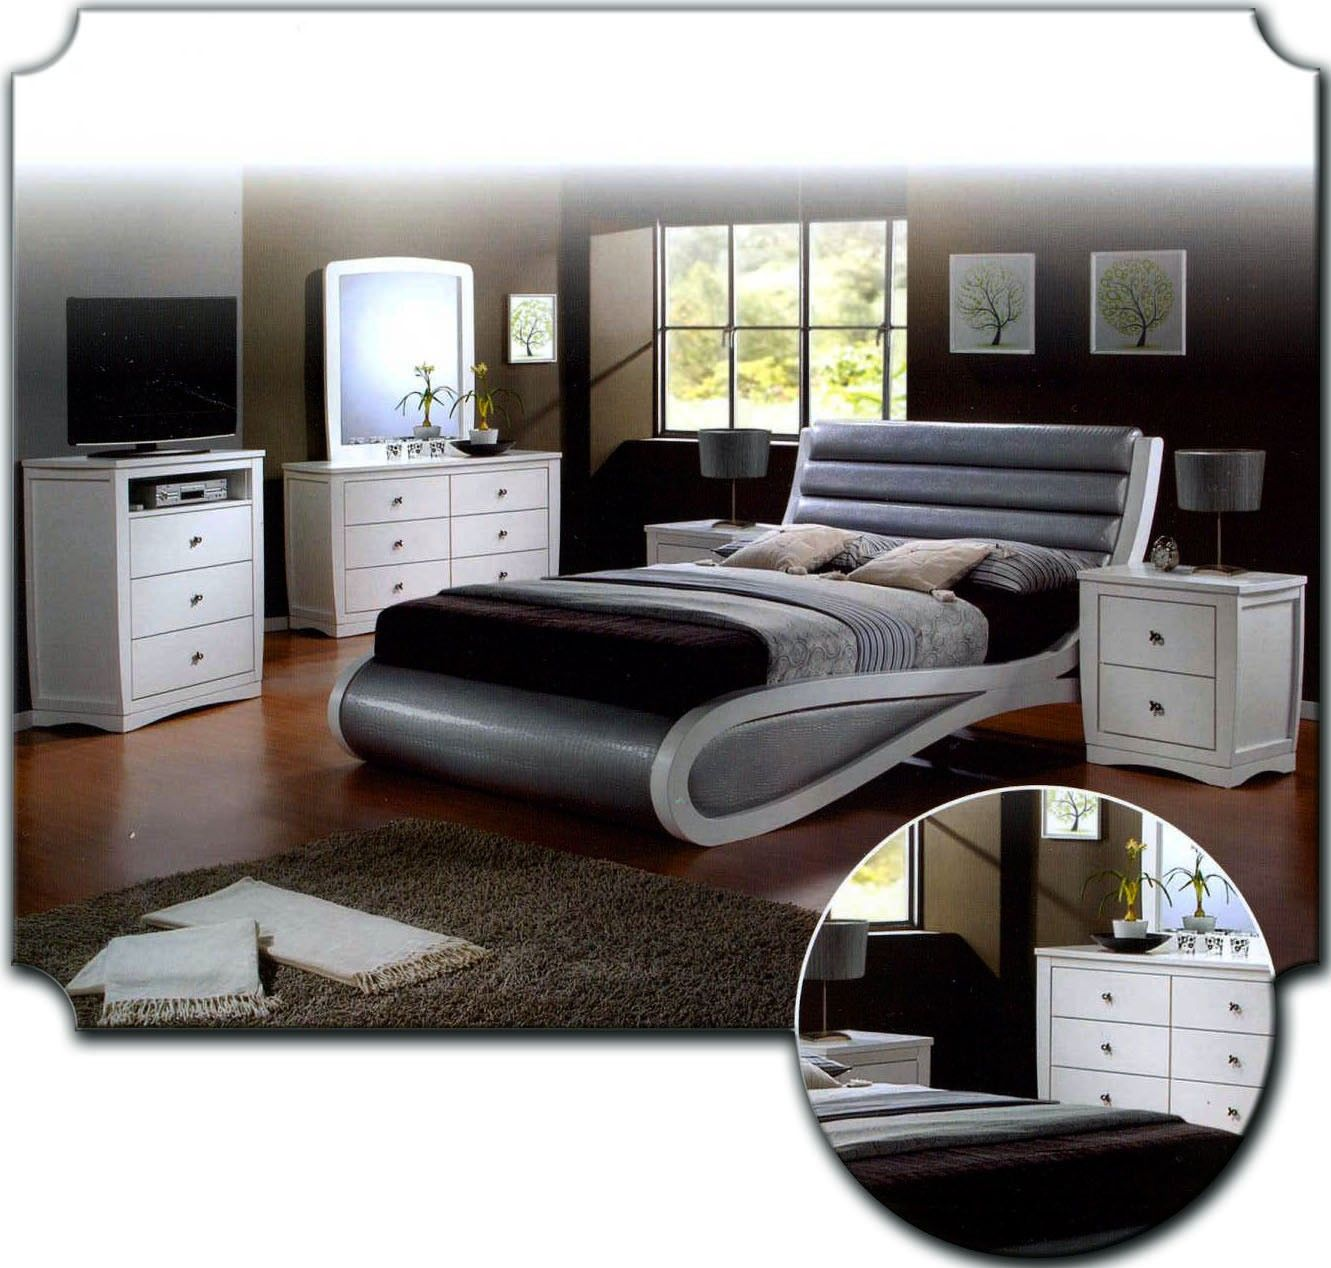 Bedroom design for teenagers boys - Bedroom Ideas For Teenage Guys Teen Platform Bedroom